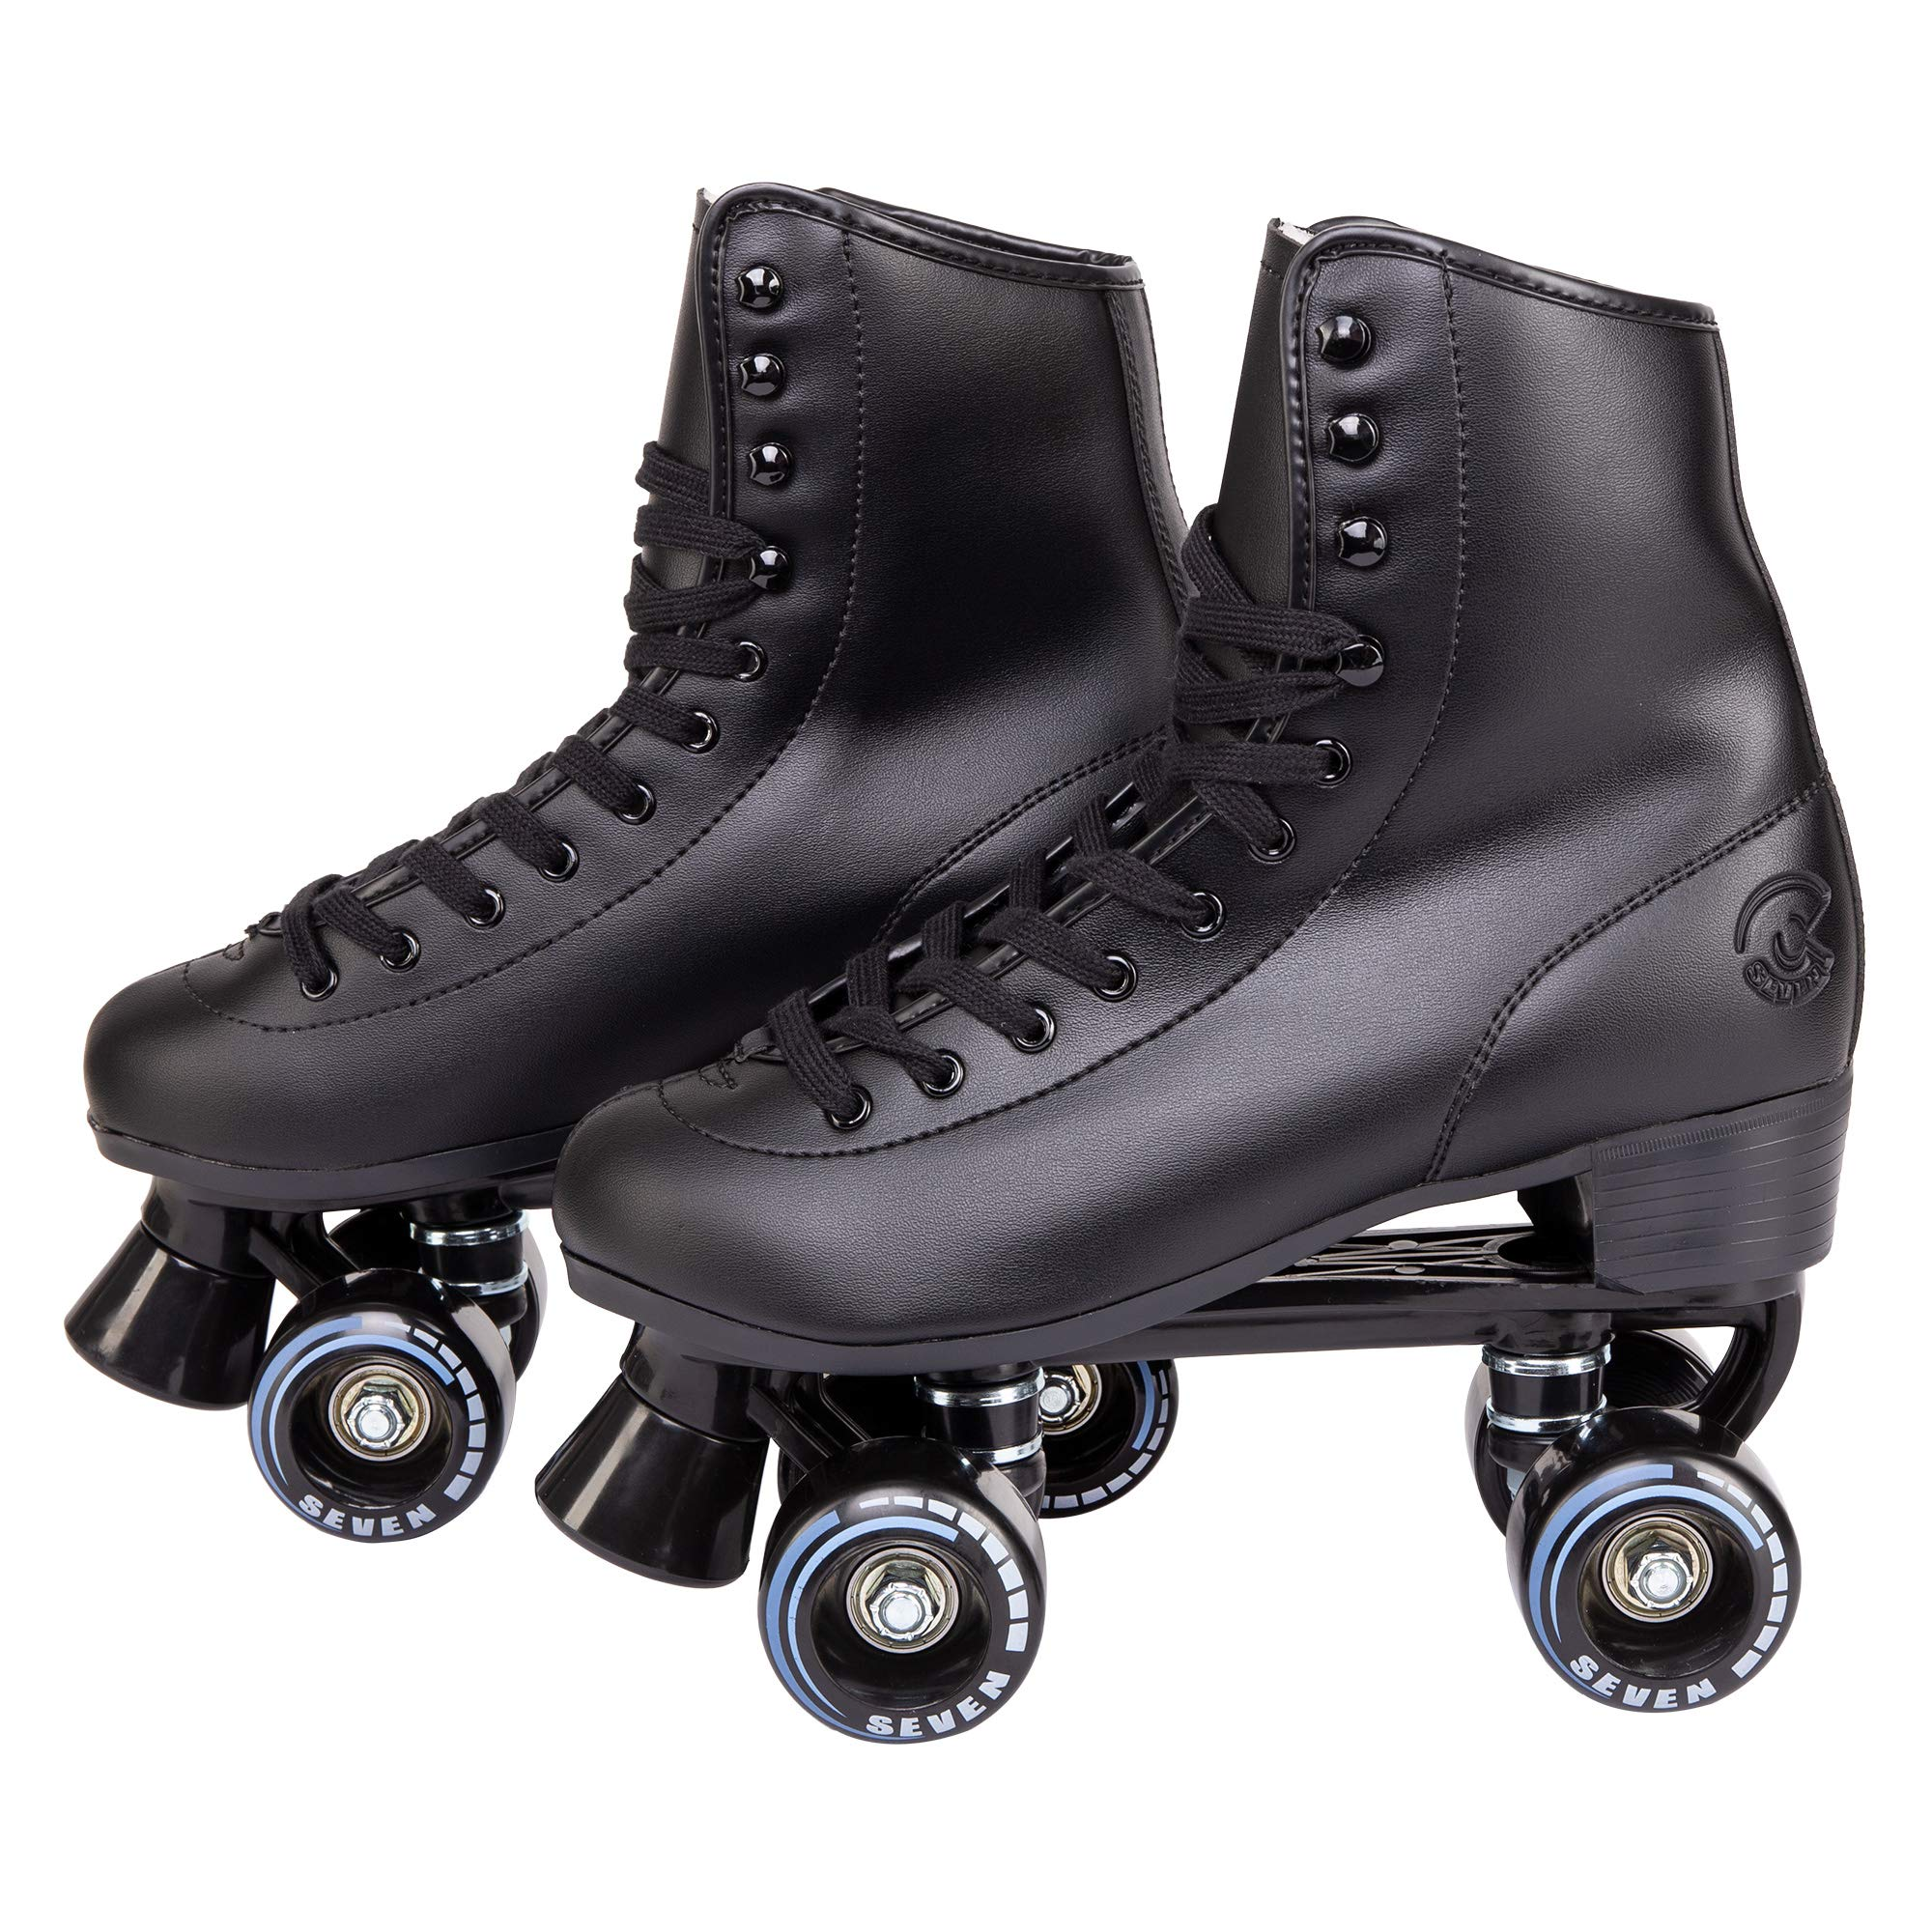 C SEVEN Classic Roller Skates with Faux Leather (Black/Youth 4 / Women's 5)